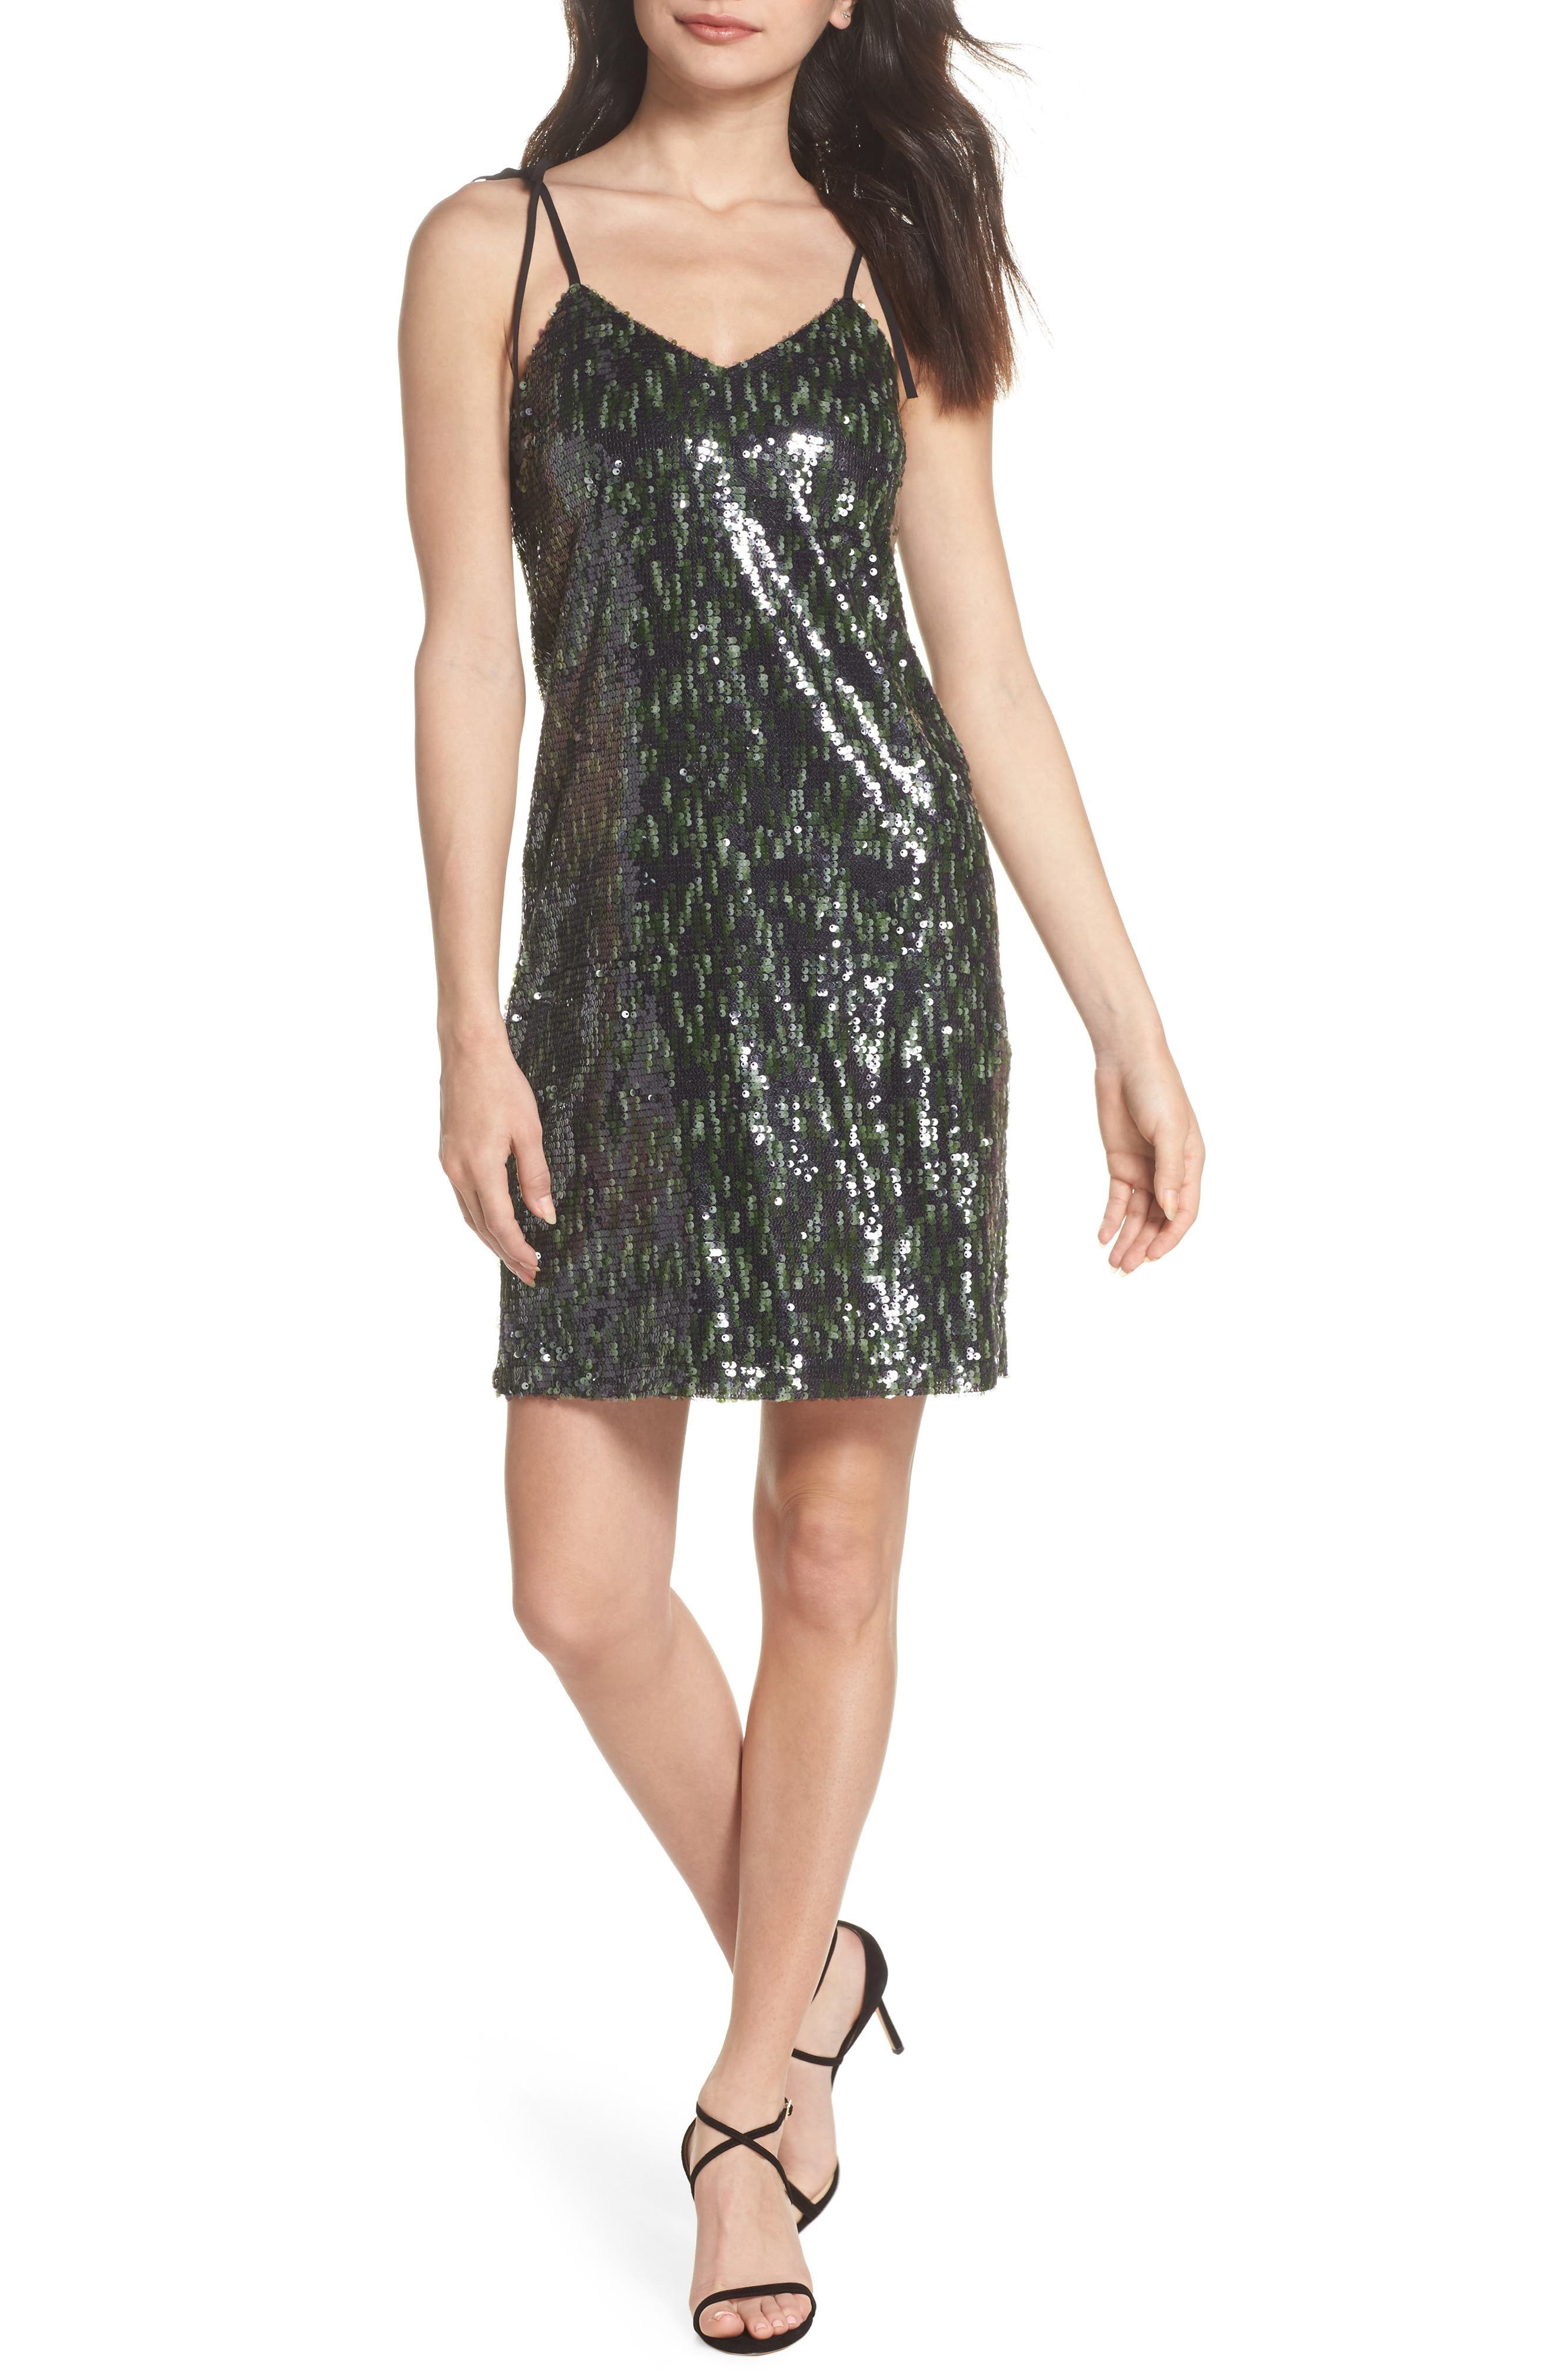 Camo Sequin Dress,                         Main,                         color, Black/ Green